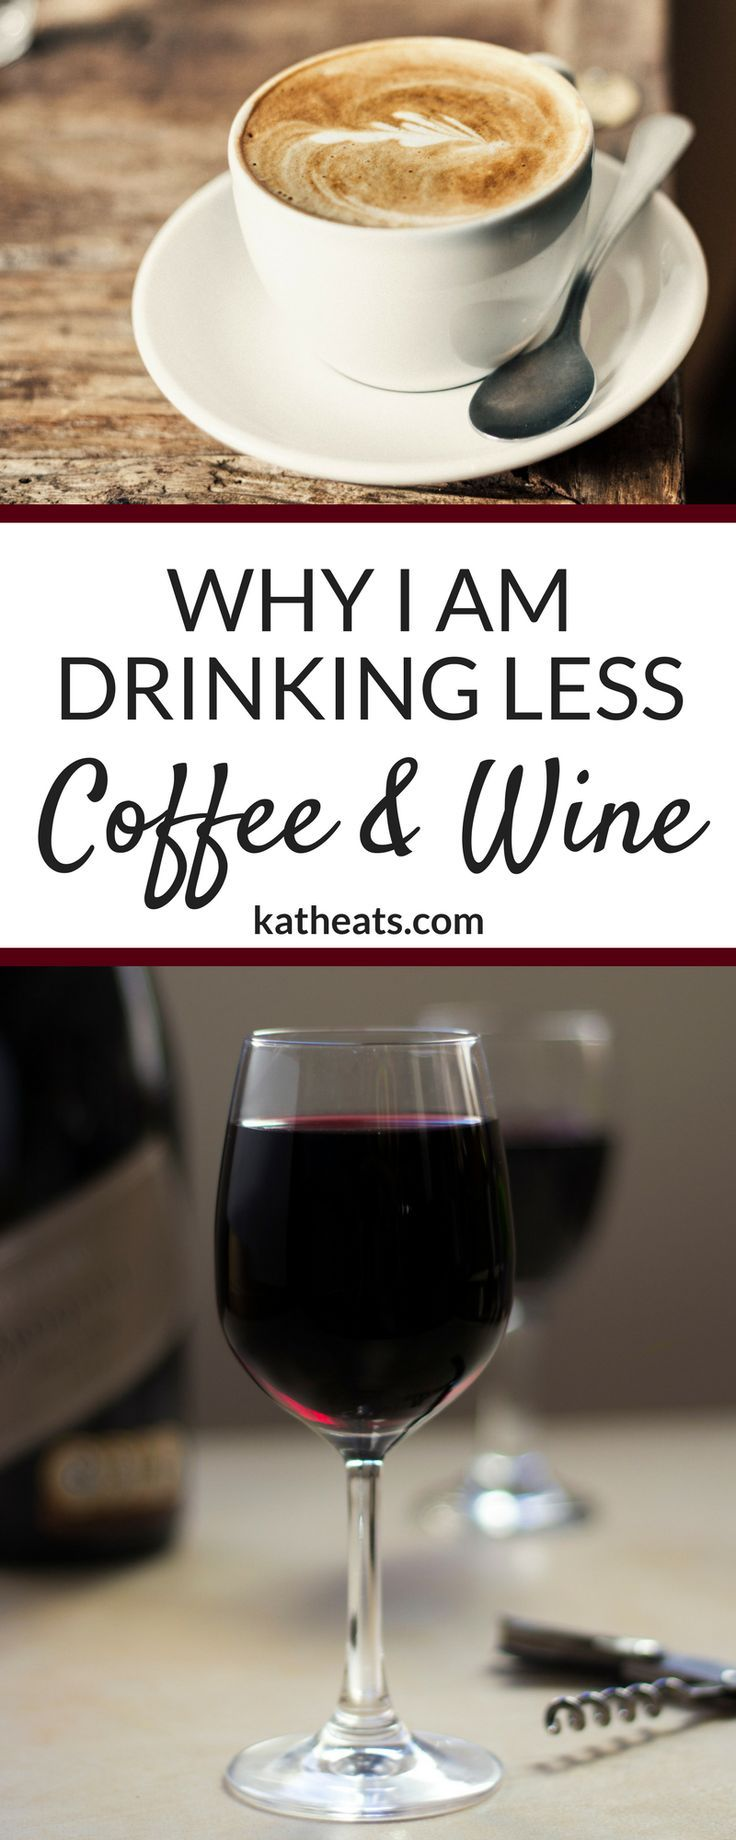 Why I am Drinking Less Coffee & Wine - my tips for cutting back on caffeine and alcohol, and why I made a change in my habits.